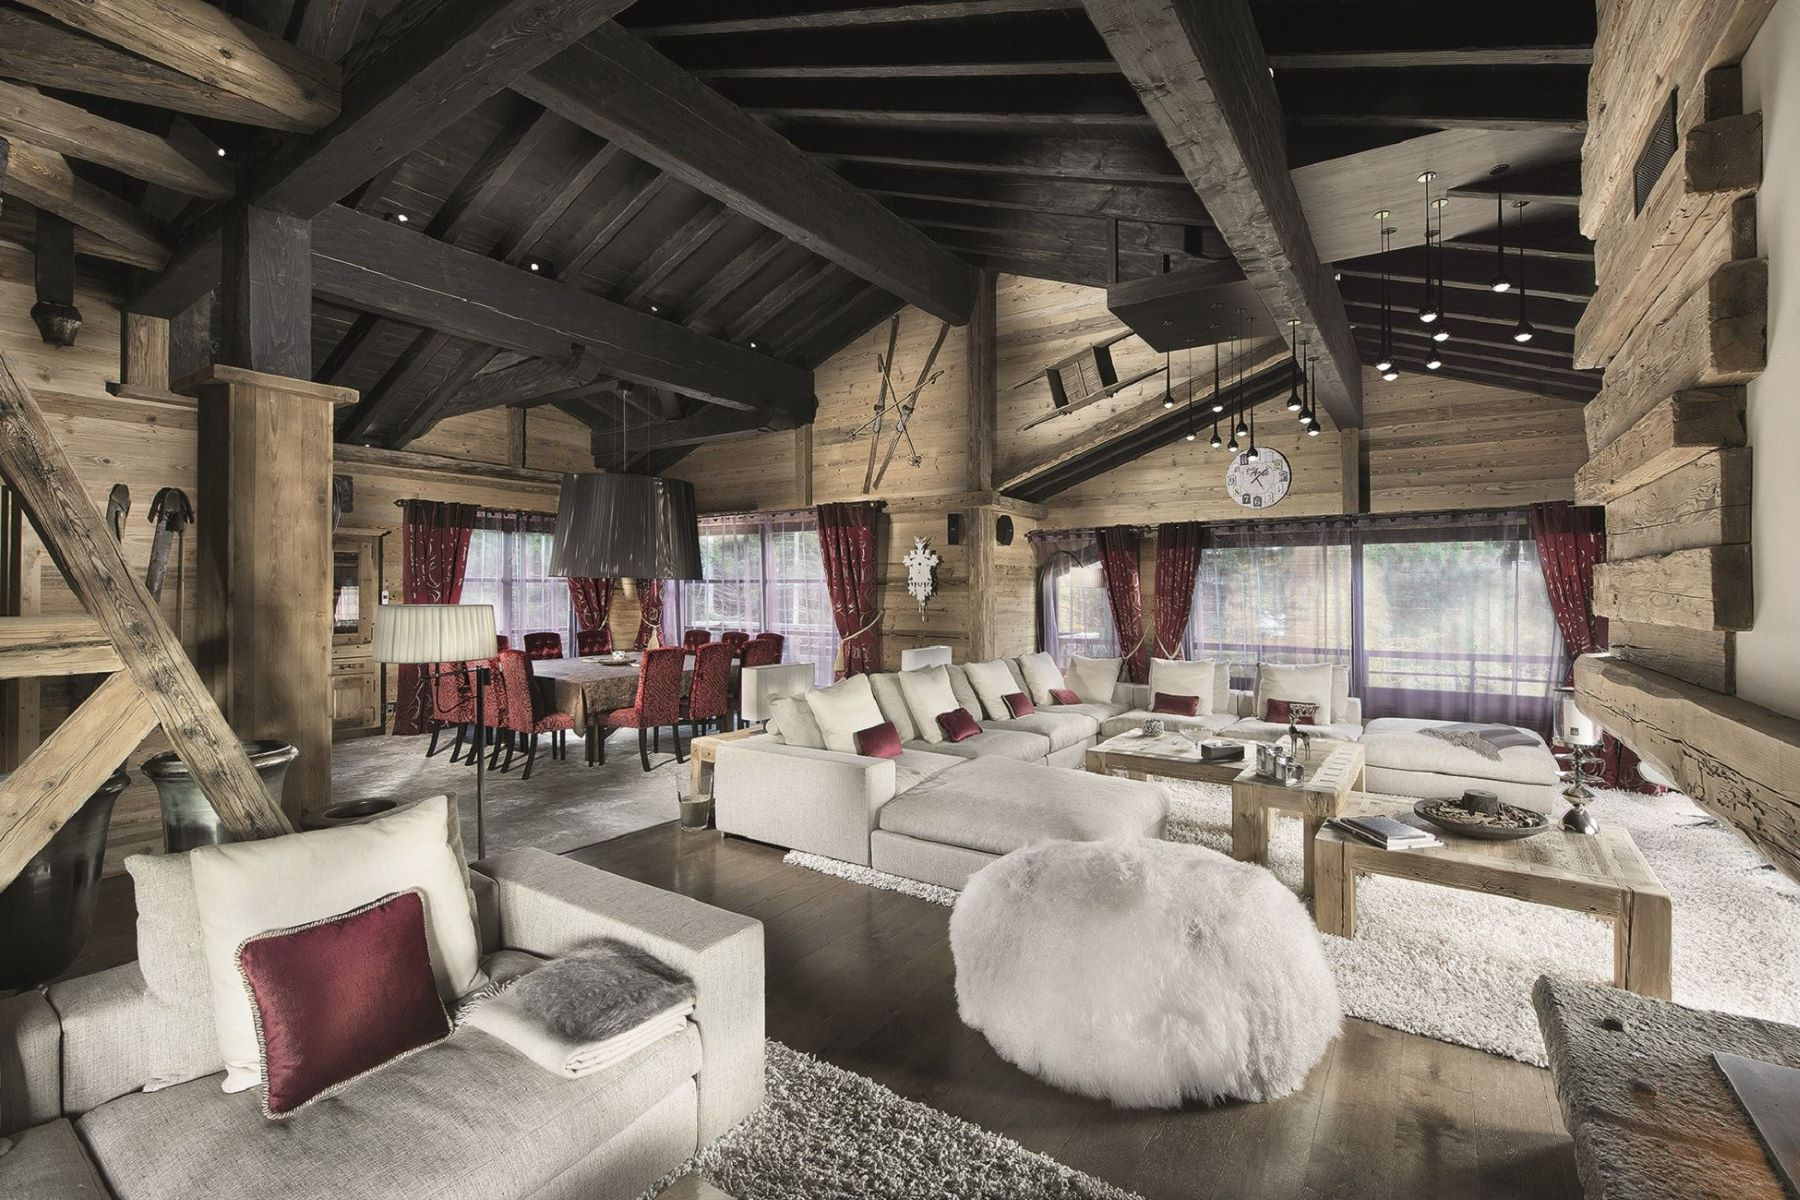 Additional photo for property listing at Luxury chalet with indoor pool for sale in Courchevel  Courchevel, Rhone-Alpes 73120 France